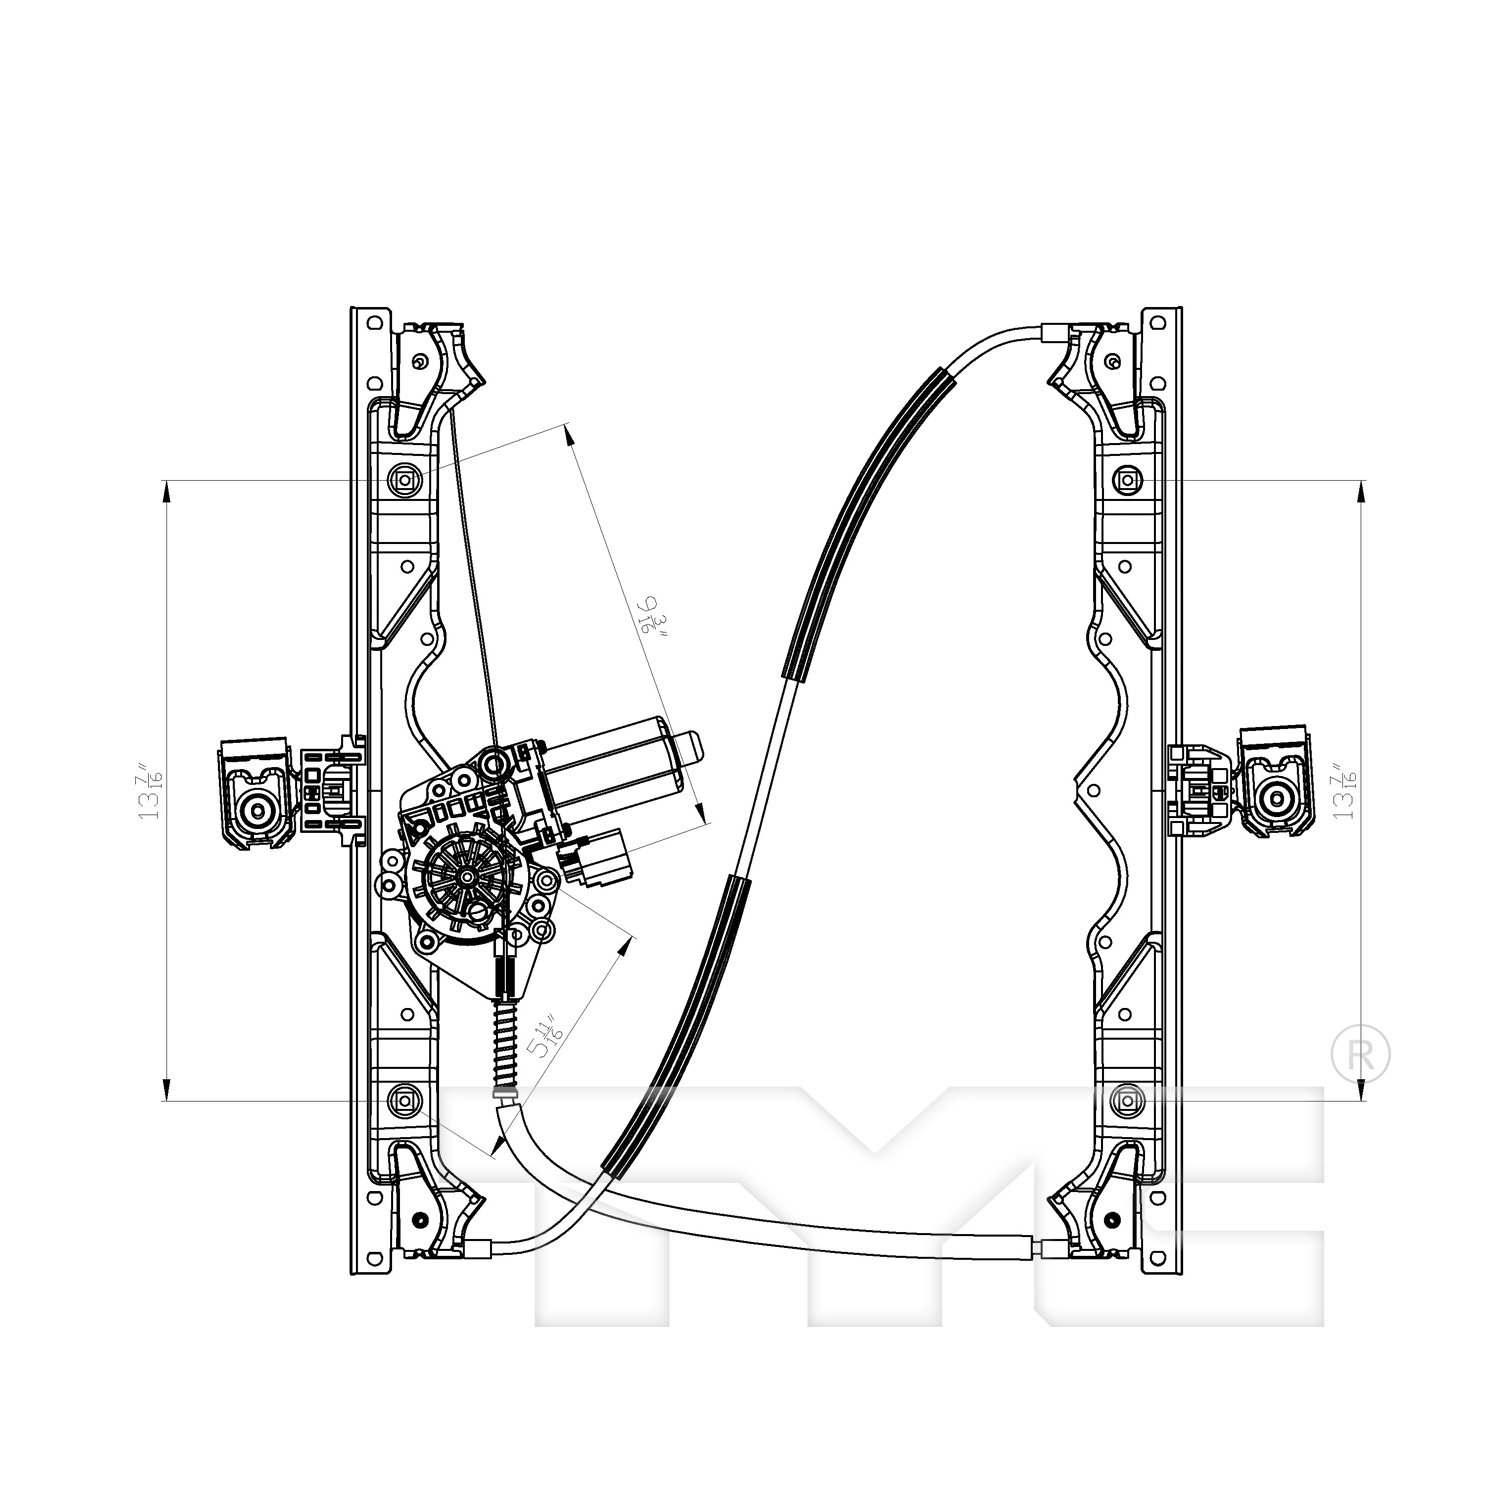 2009 Jeep Grand Cherokee Power Window Motor And Regulator Assembly Engine Diagram Ty 660429